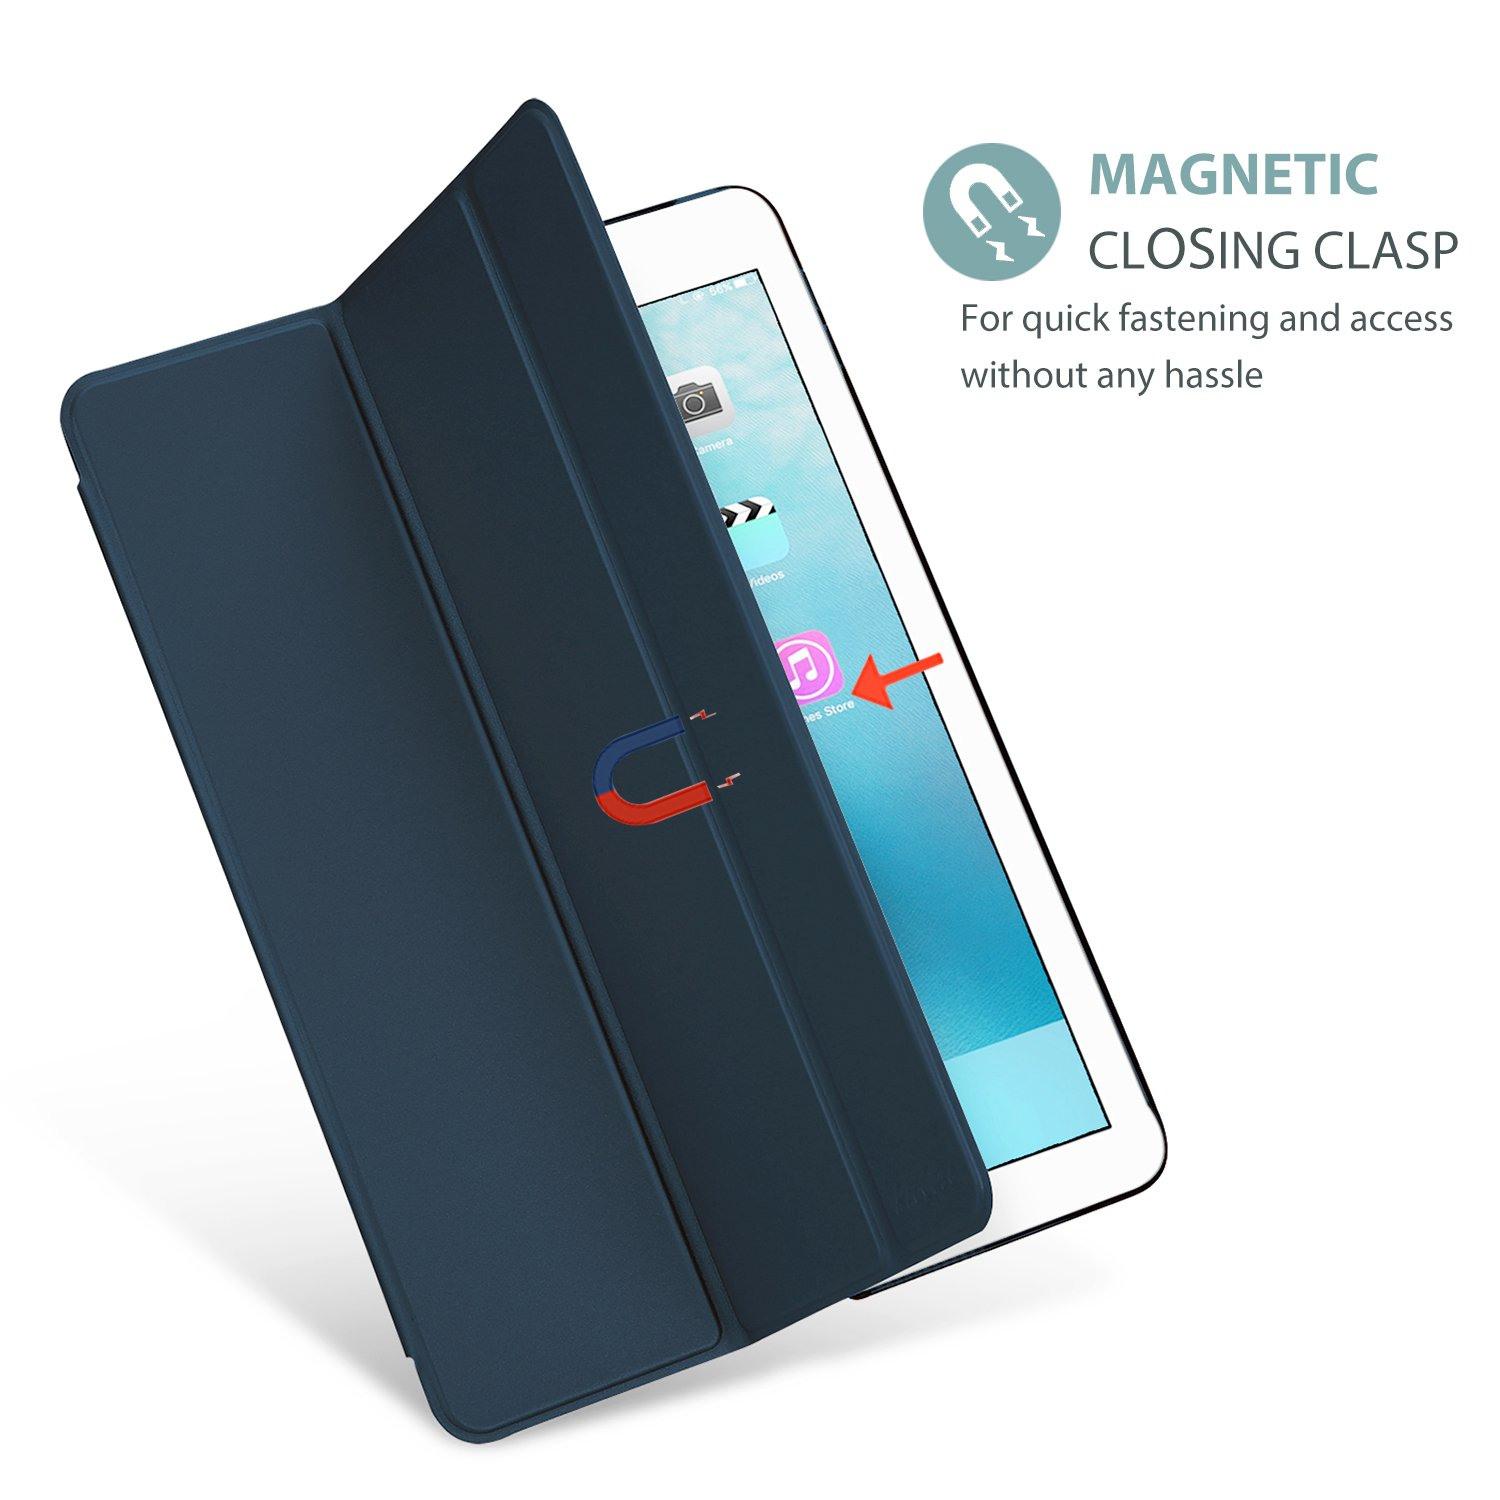 ProCase iPad 9.7 Case 2018 iPad 6th Generation Case / 2017 iPad 5th Generation Case - Ultra Slim Lightweight Stand Case with Translucent Frosted Back Smart Cover for Apple iPad 9.7 Inch -Navy Blue by ProCase (Image #7)